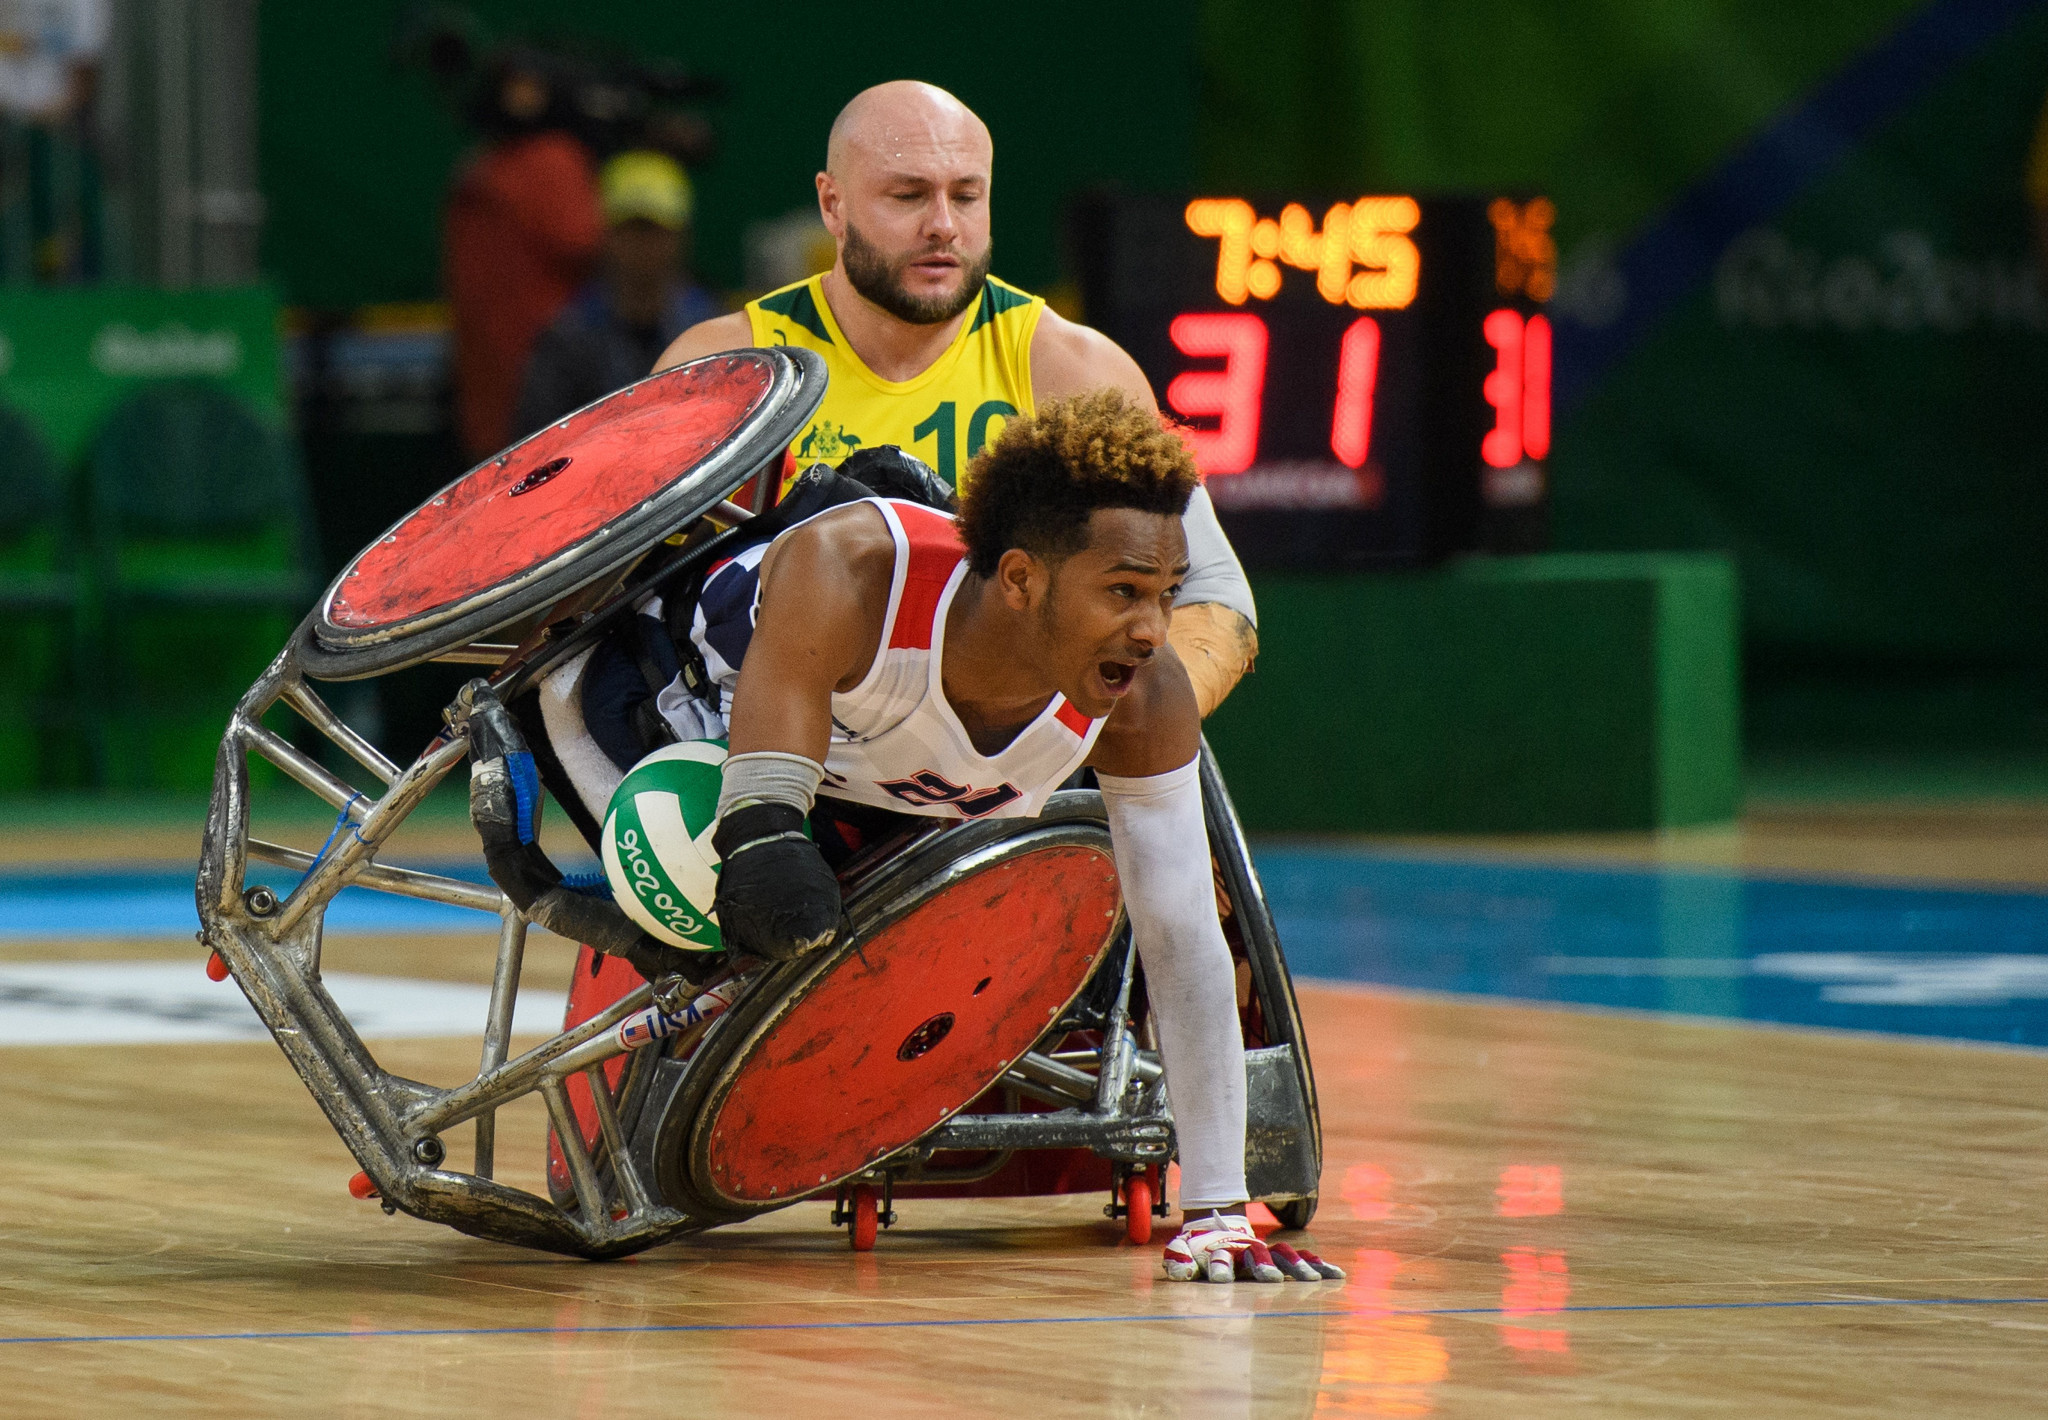 The IWRF has awarded a major wheelchair rugby event to Switzerland ©Getty Images